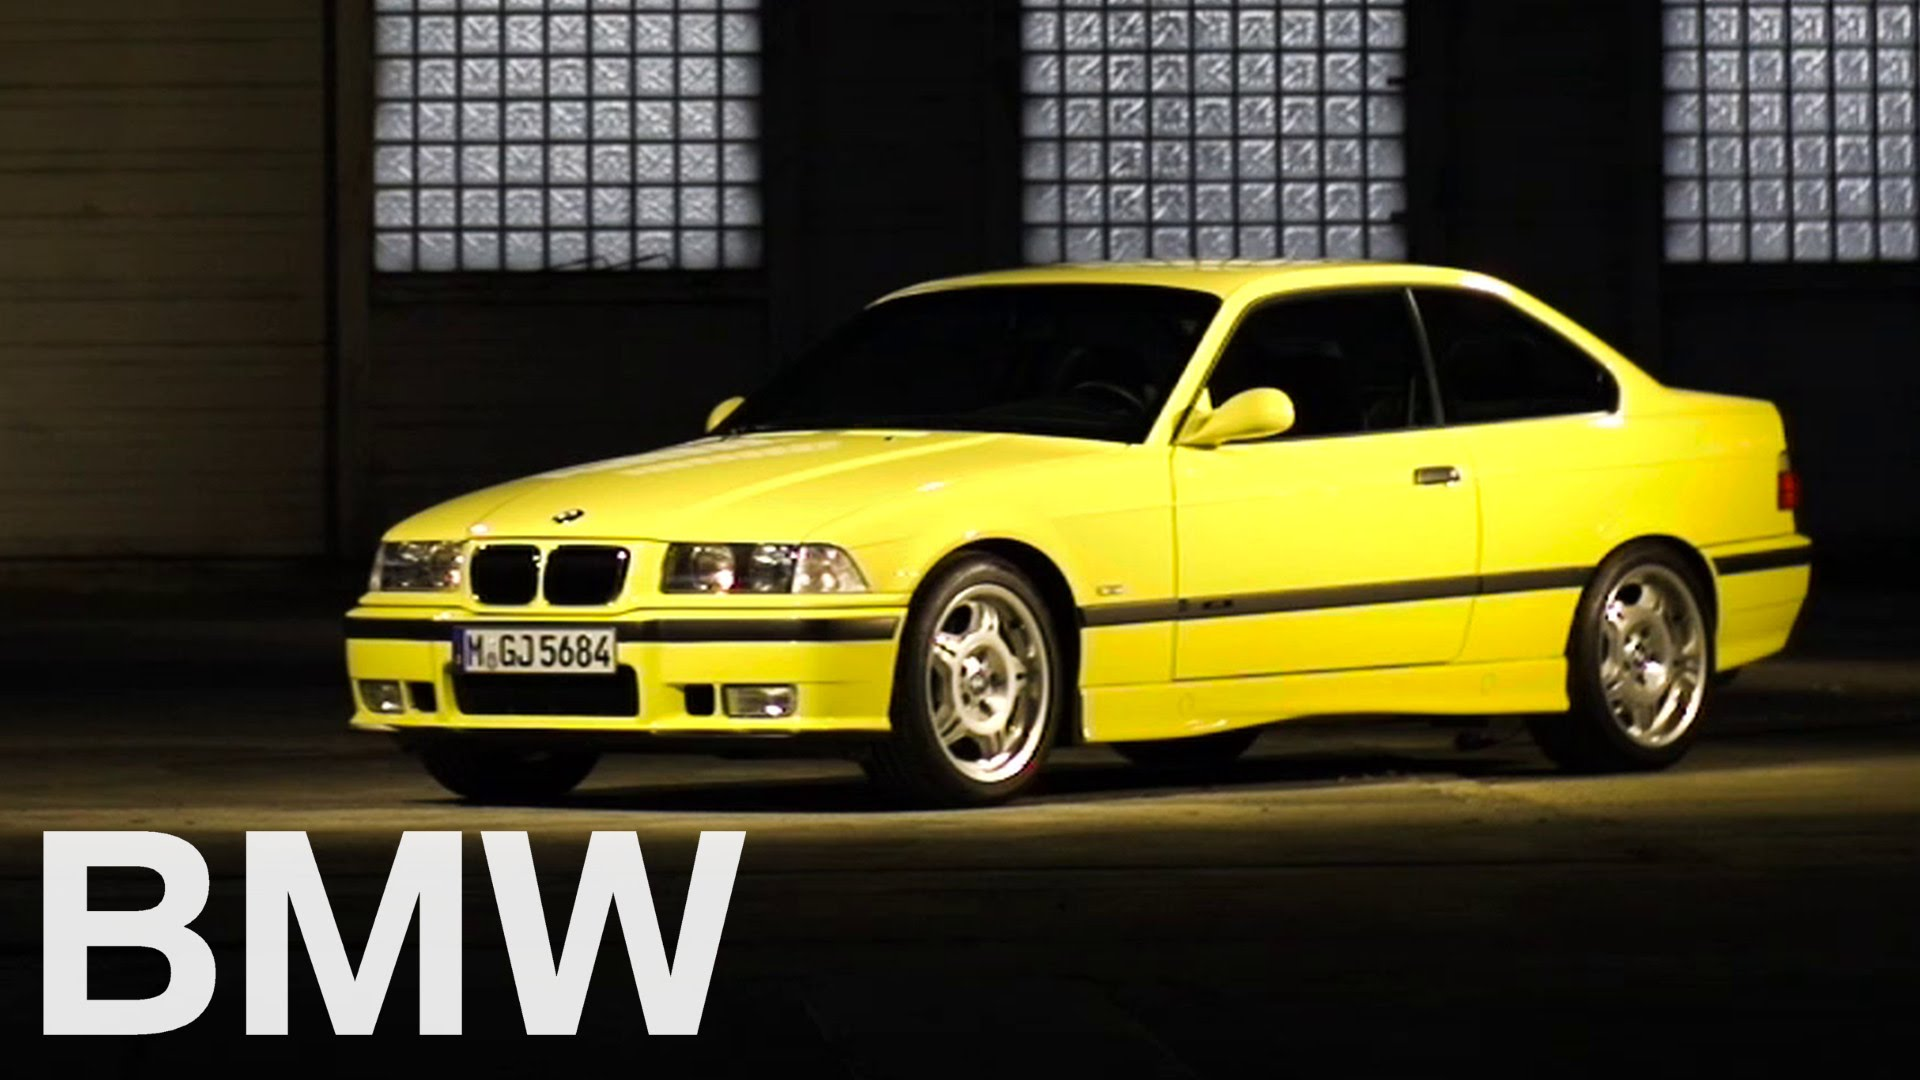 Exceptional Second Generation BMW M3 Is One Of The Best Cars Ever